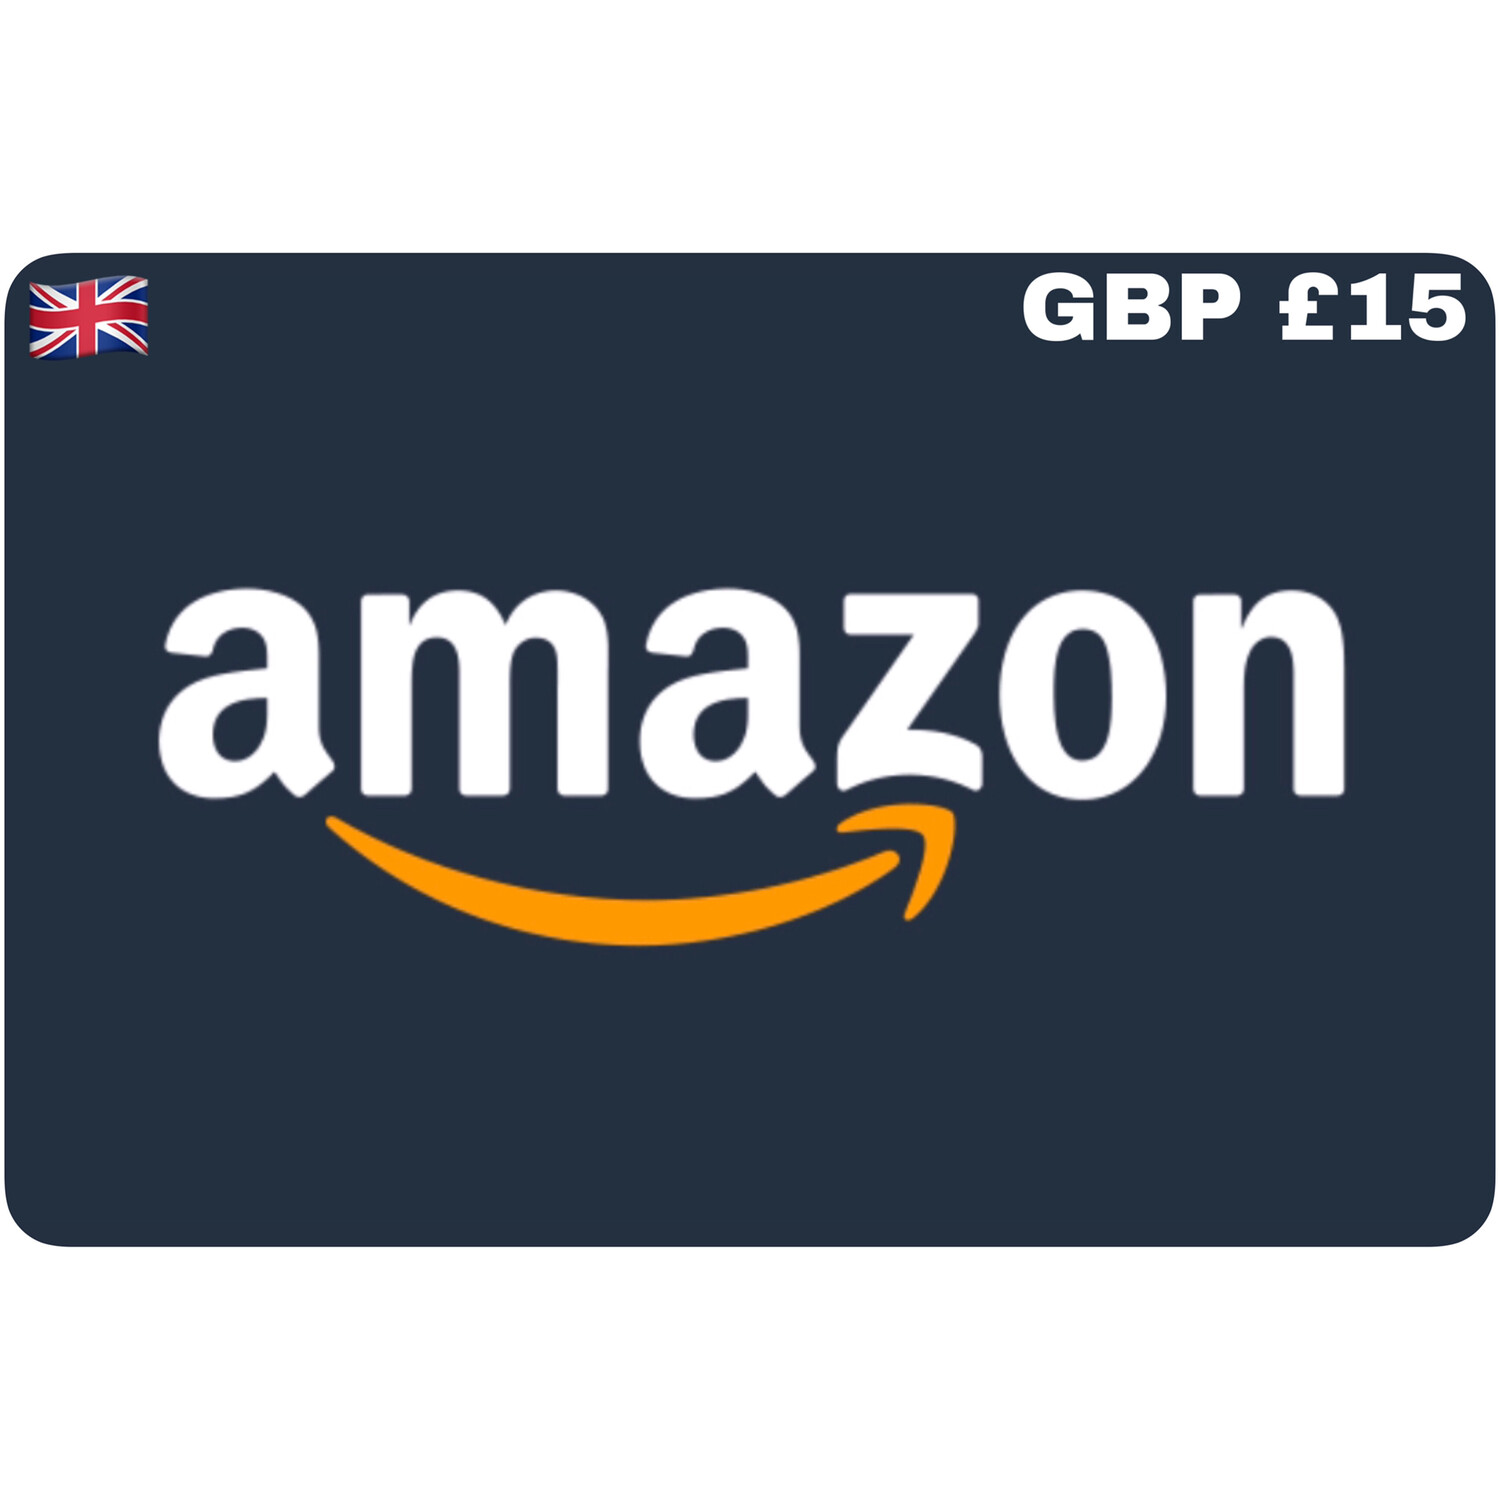 Amazon.co.uk Gift Card UK GBP £15